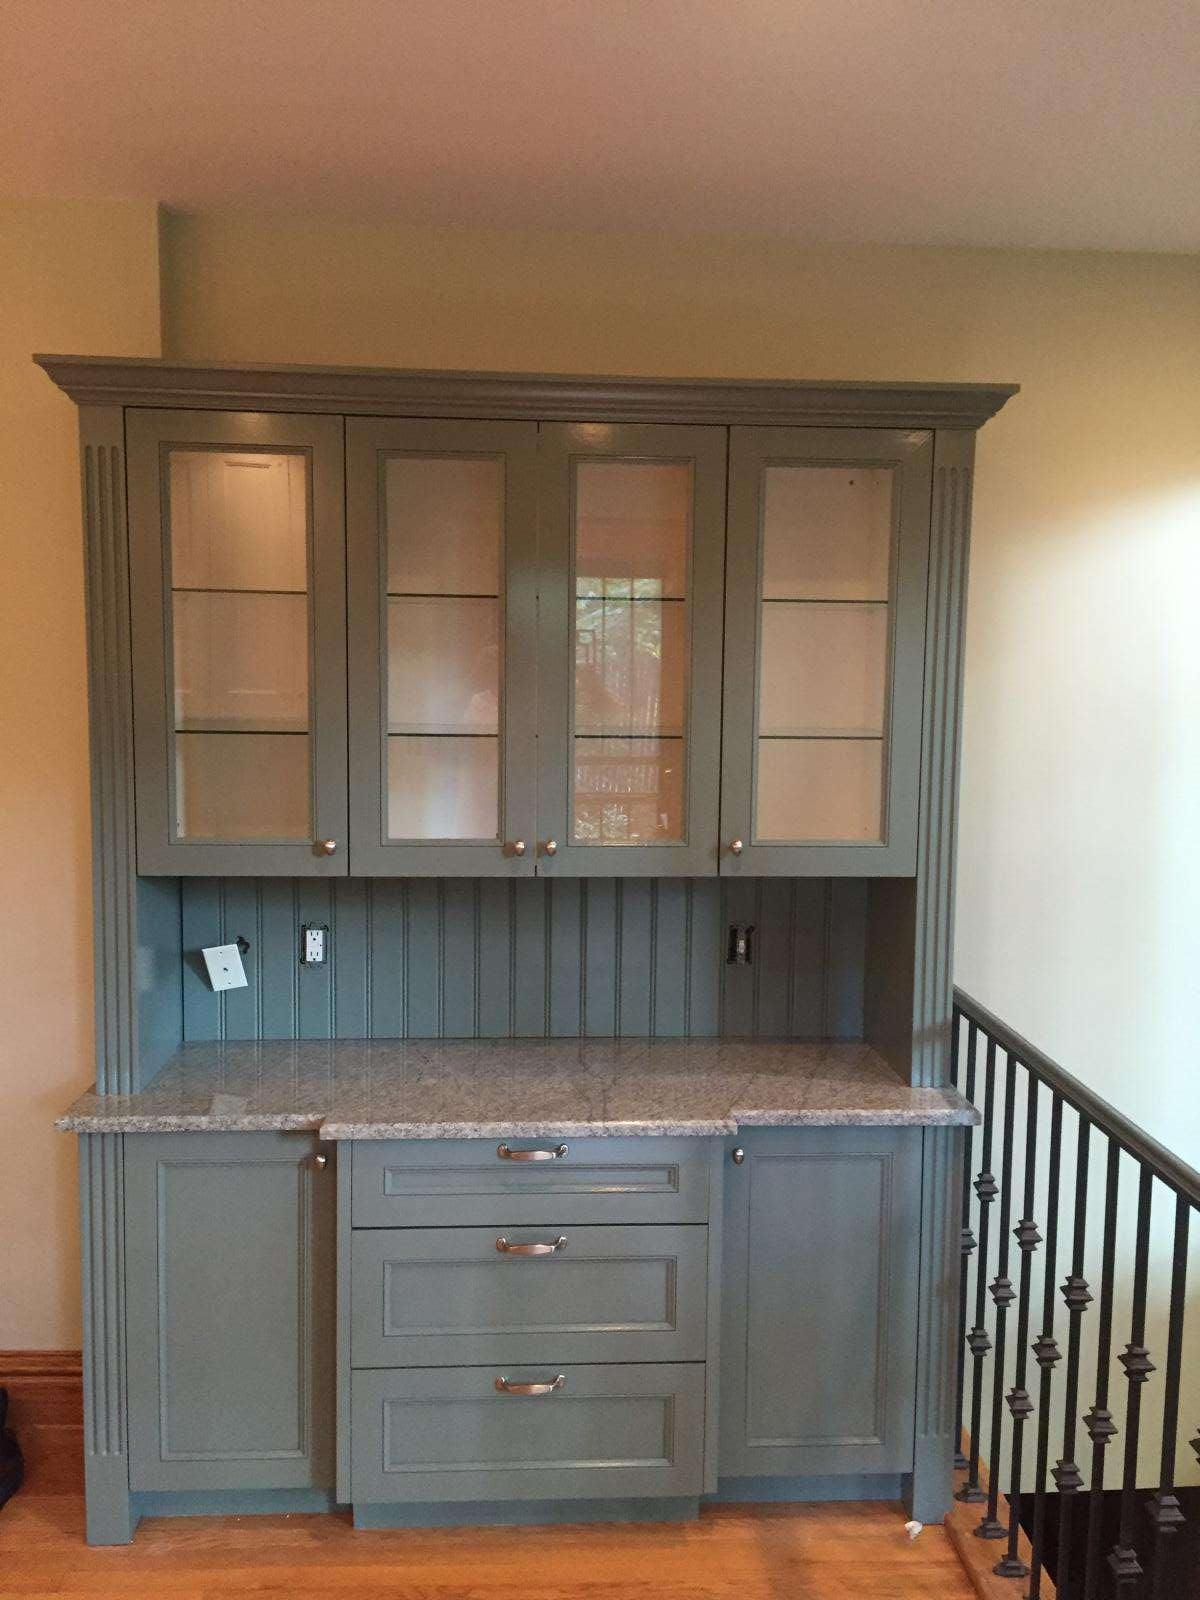 Repainted cabinets